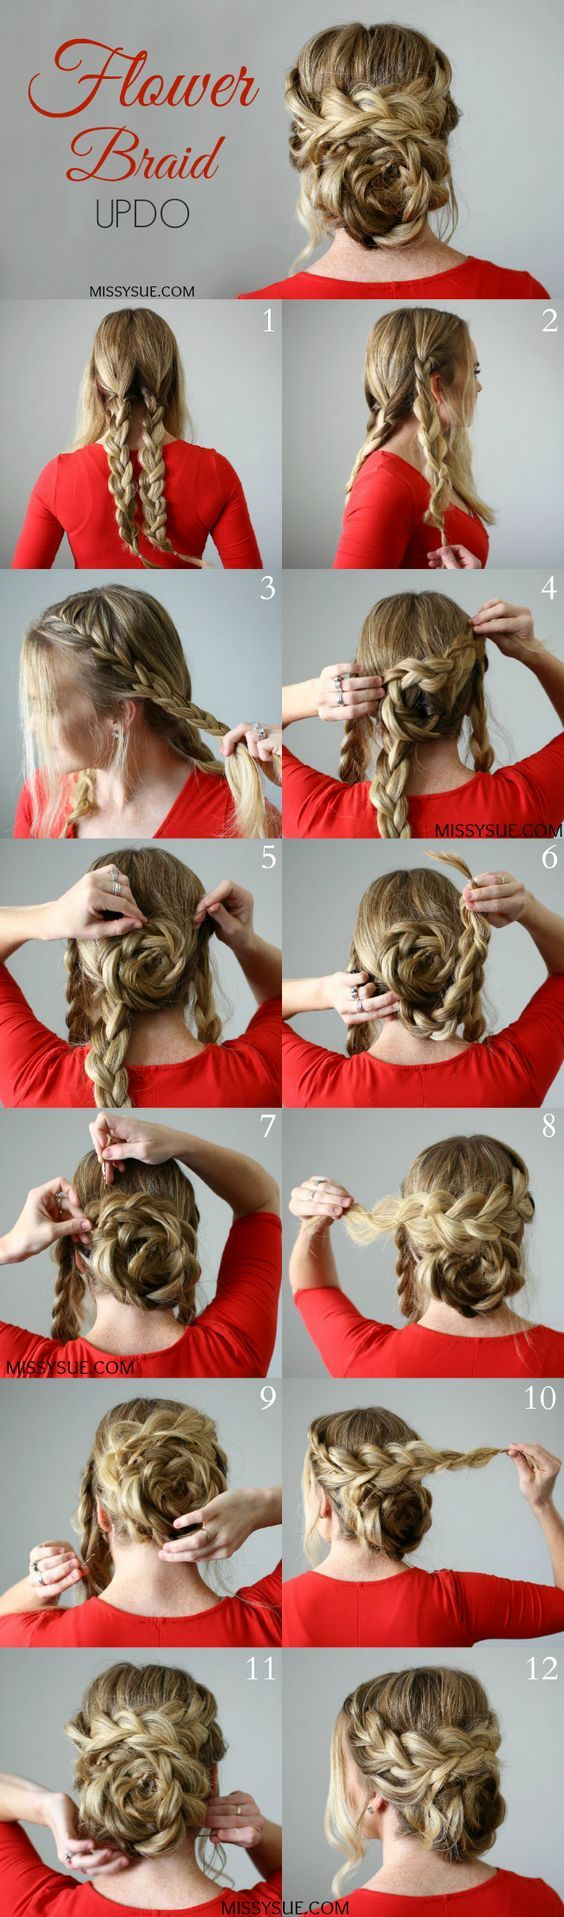 100 Super Easy Diy Braided Hairstyles For Wedding Tutorials Hair